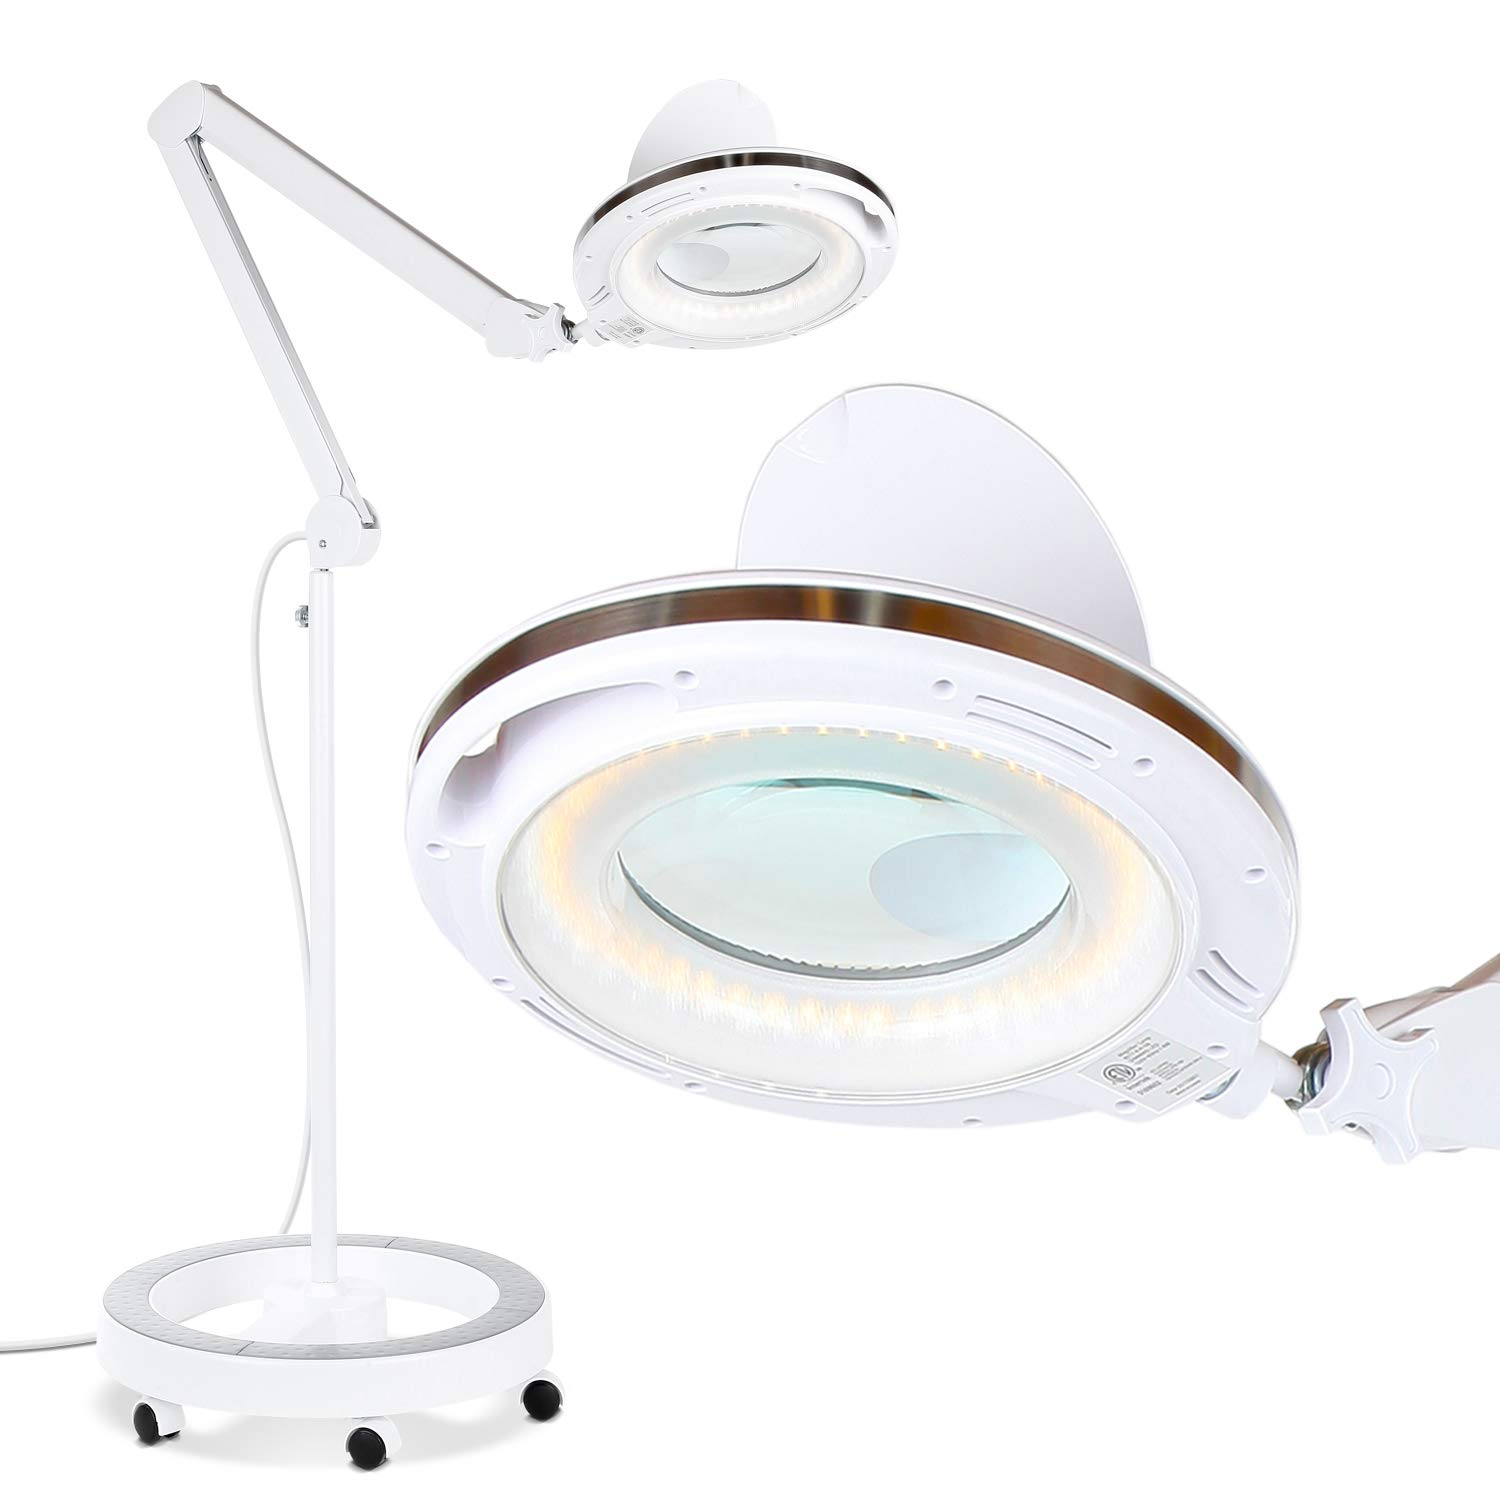 Brightech LightView Pro LED Magnifying Glass Floor Lamp - 6 Wheel Rolling Base Reading Magnifier Light with Gooseneck - for Professional Tasks and Crafts -White